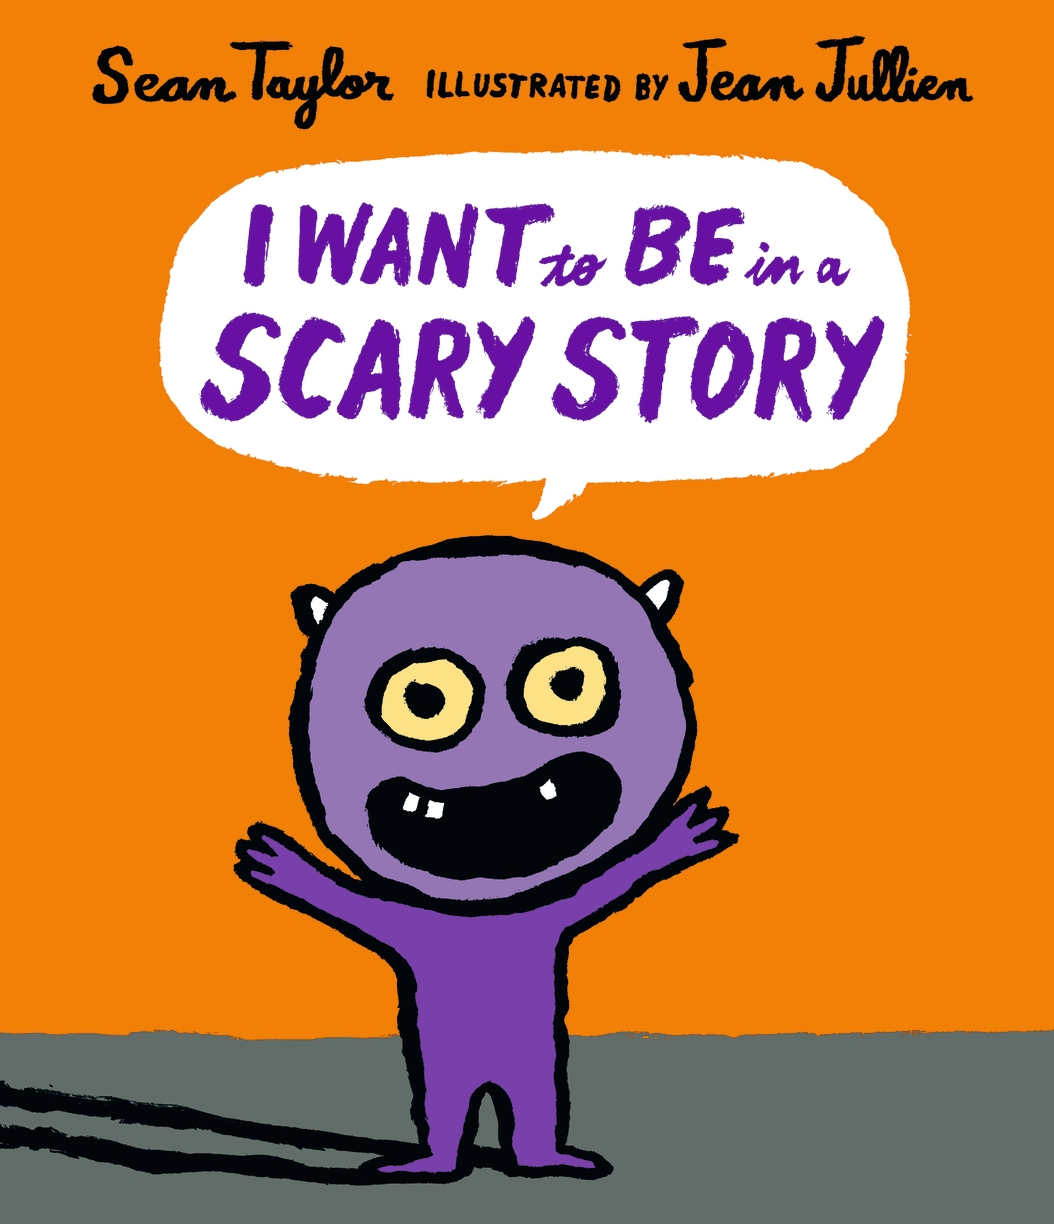 picture book party win i want to be in a scary story plus  win i want to be in a scary story plus spooktacular halloween party ideas